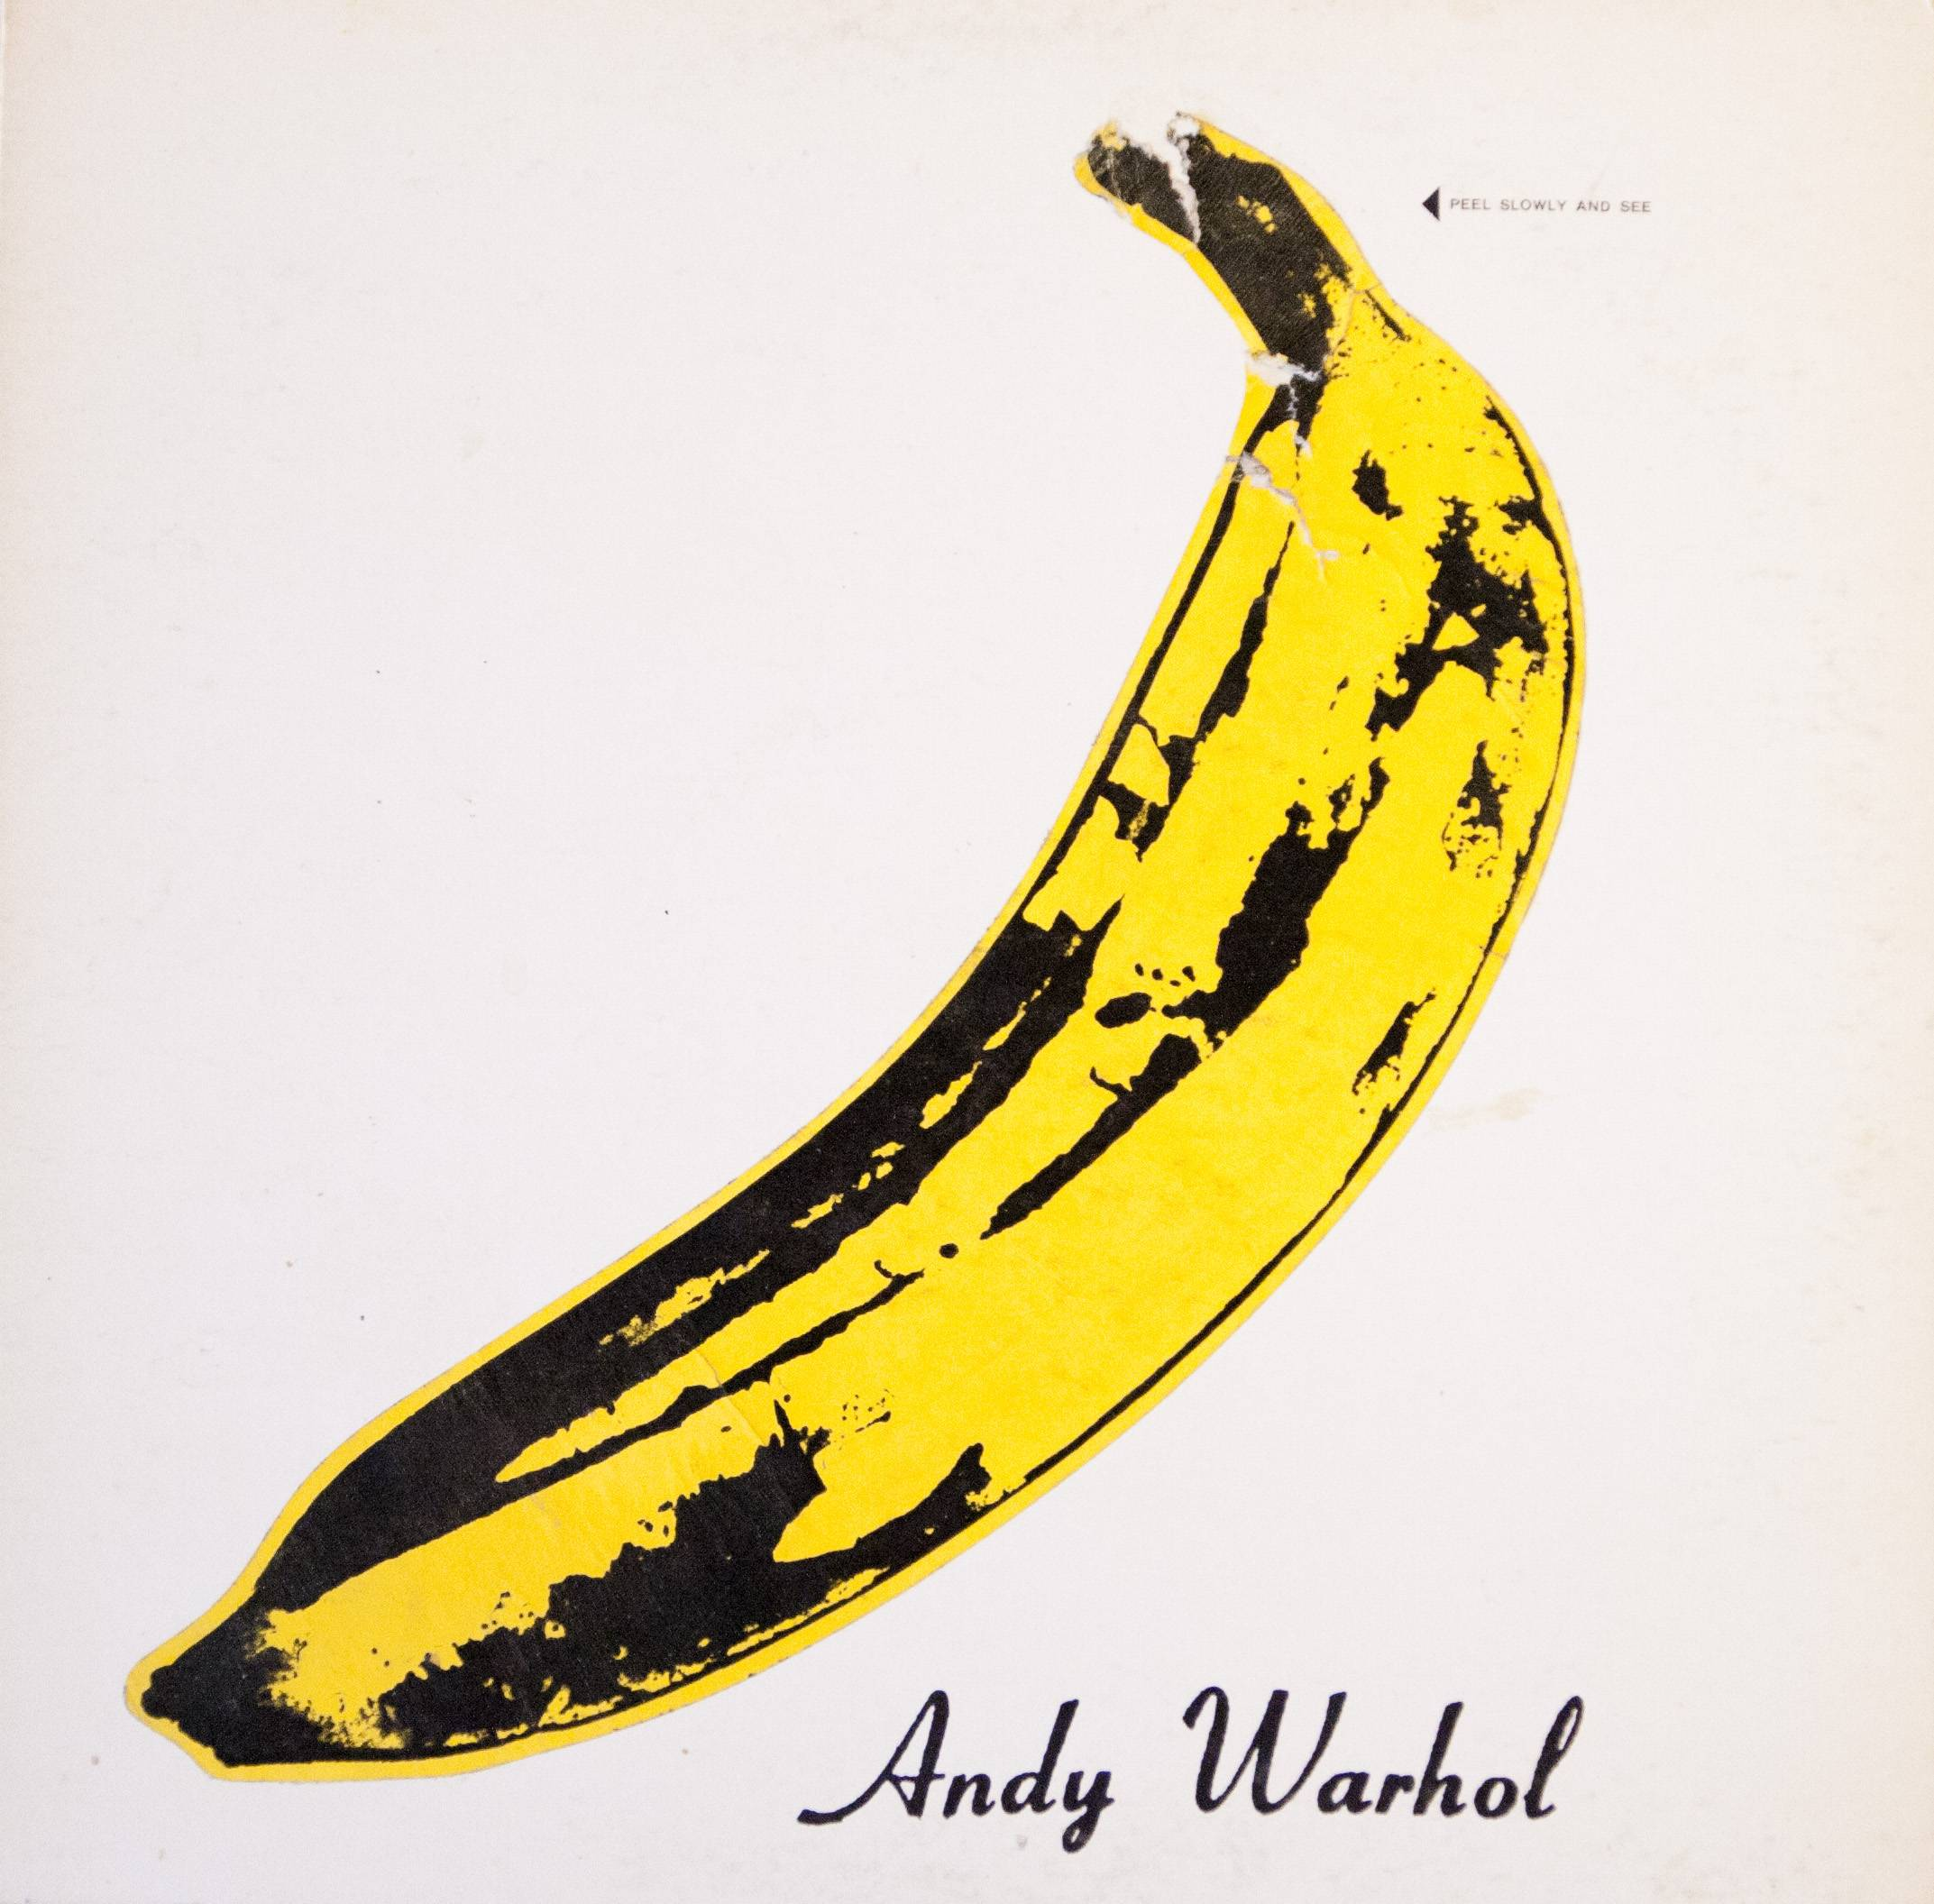 "The 1967 Andy Warhol-designed album called ""The Velvet Underground and Nico"" will be among those on display starting Saturday at an exhibition of Warhol's album covers at the Cranbrook Art Museum in Bloomfield Hills, Mich."